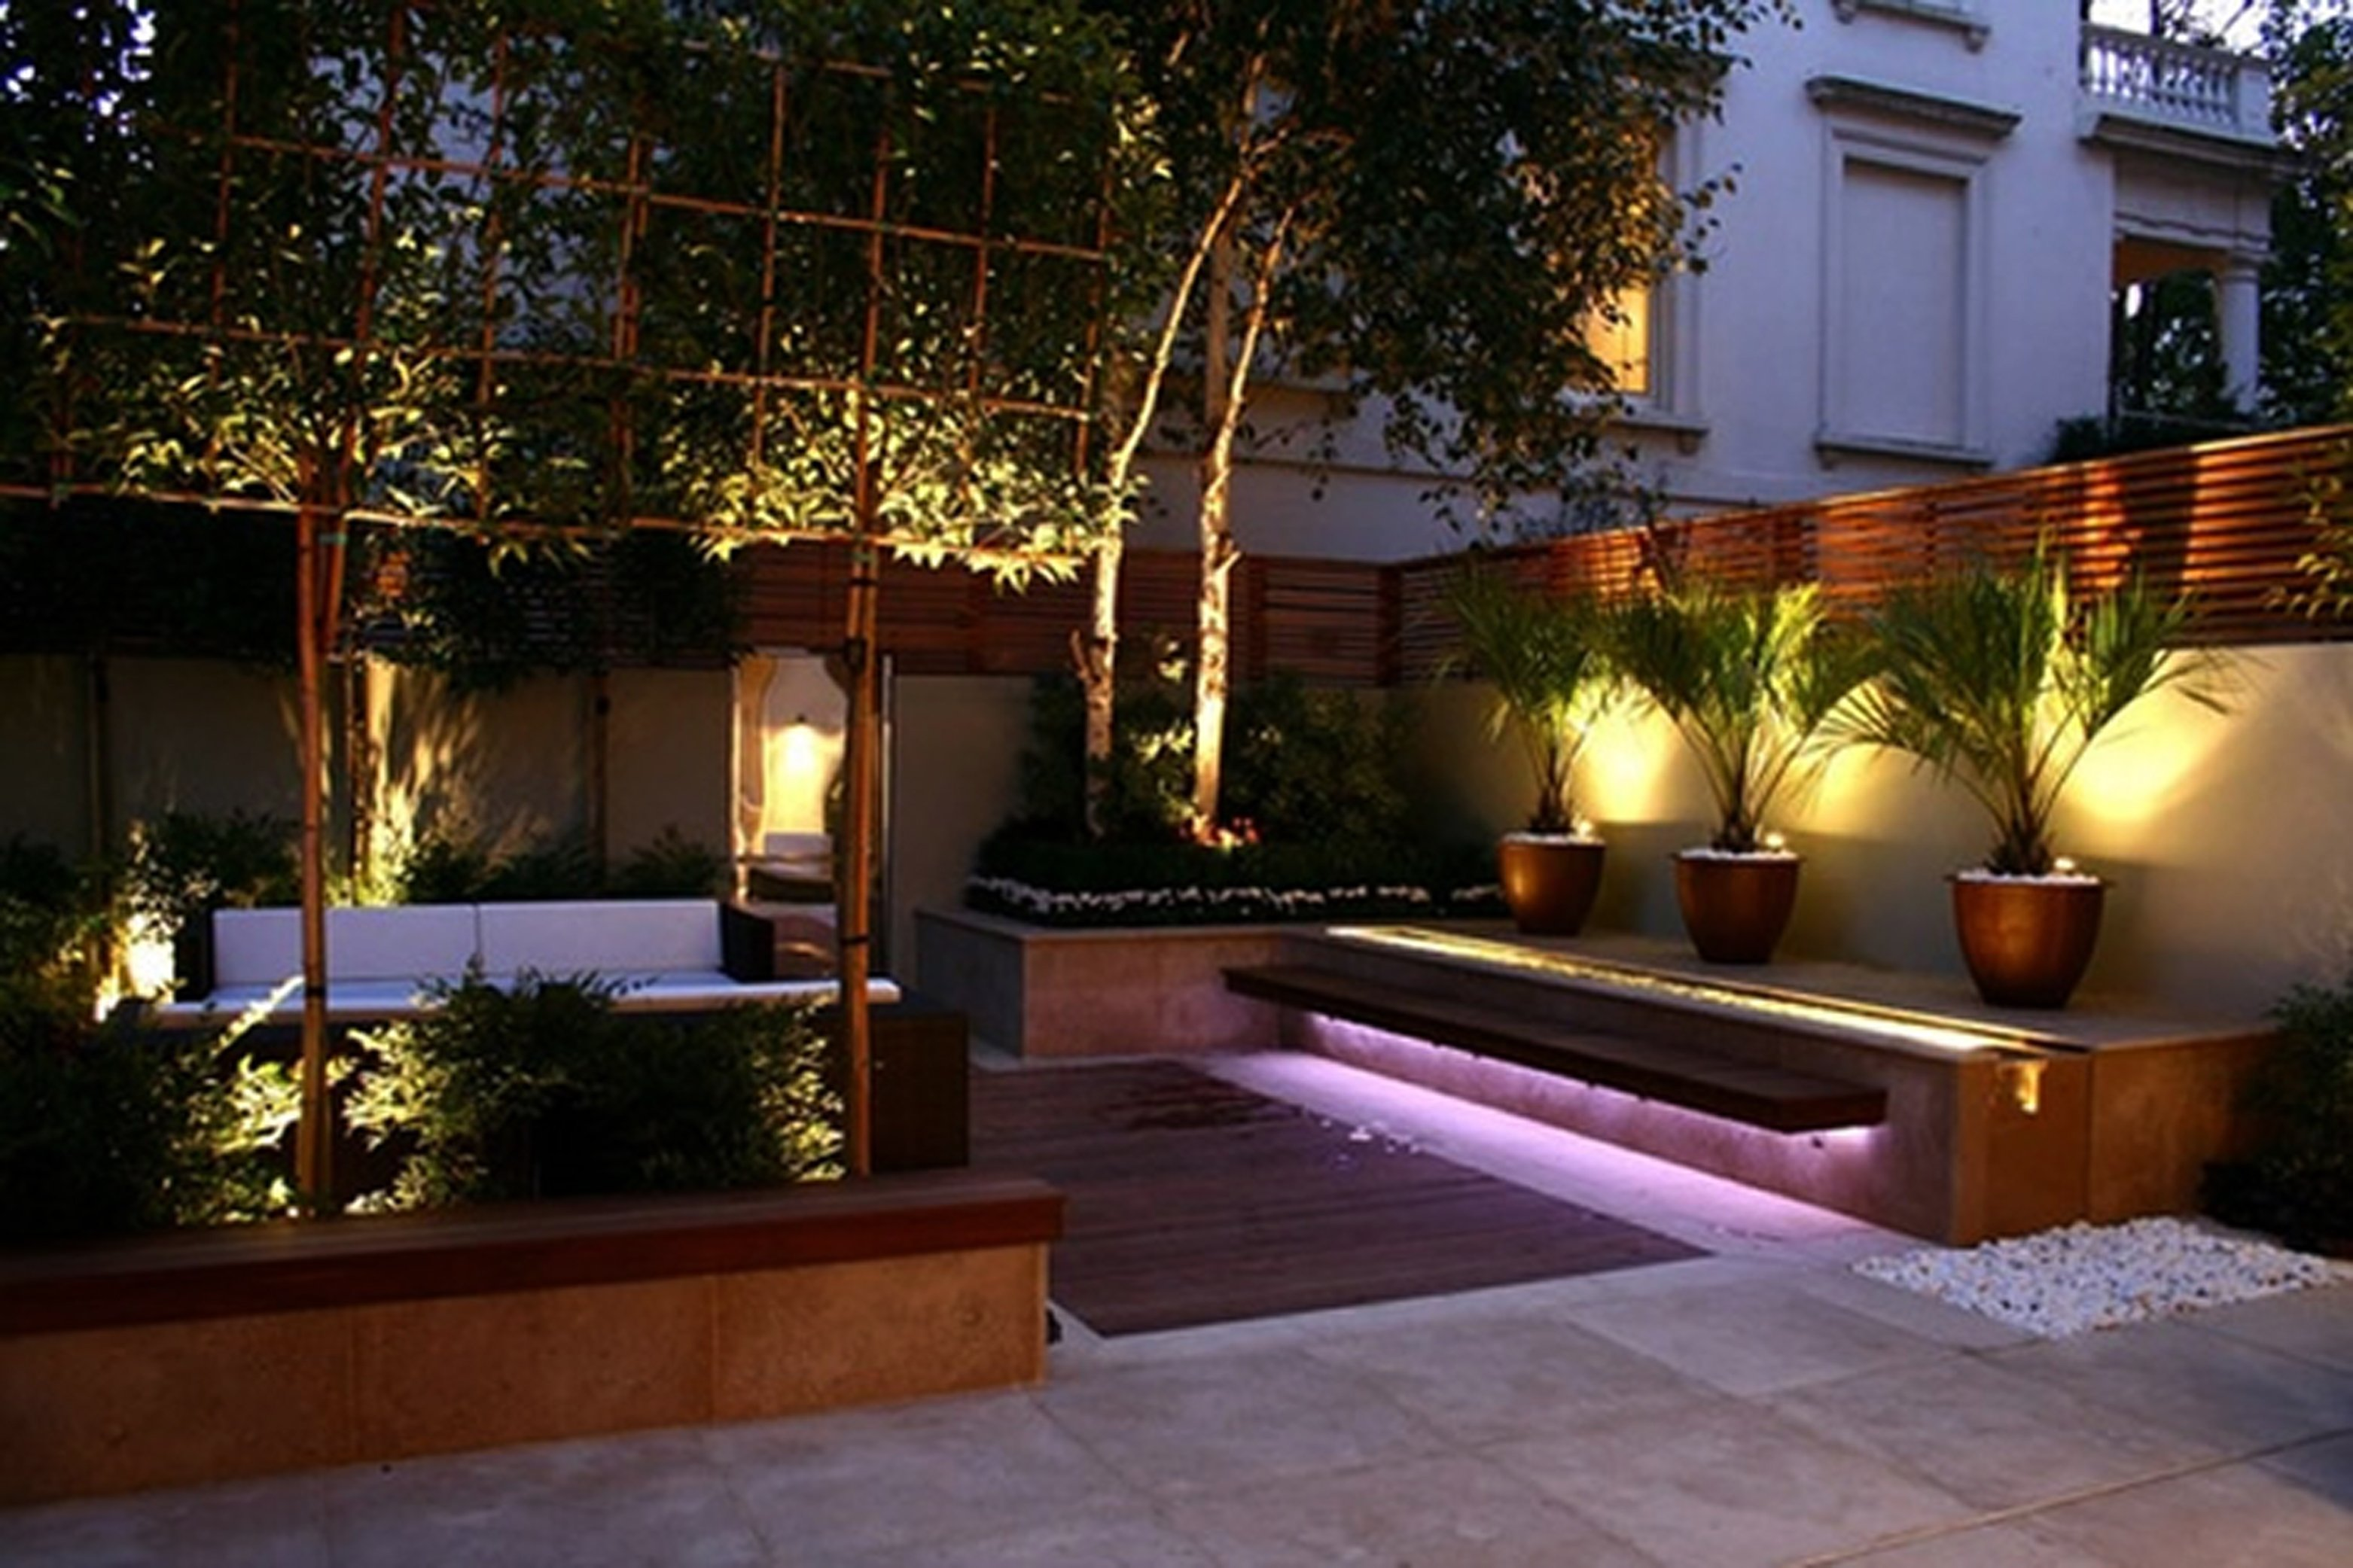 Ideas para decorar exteriores en primavera for Iluminacion led para jardines